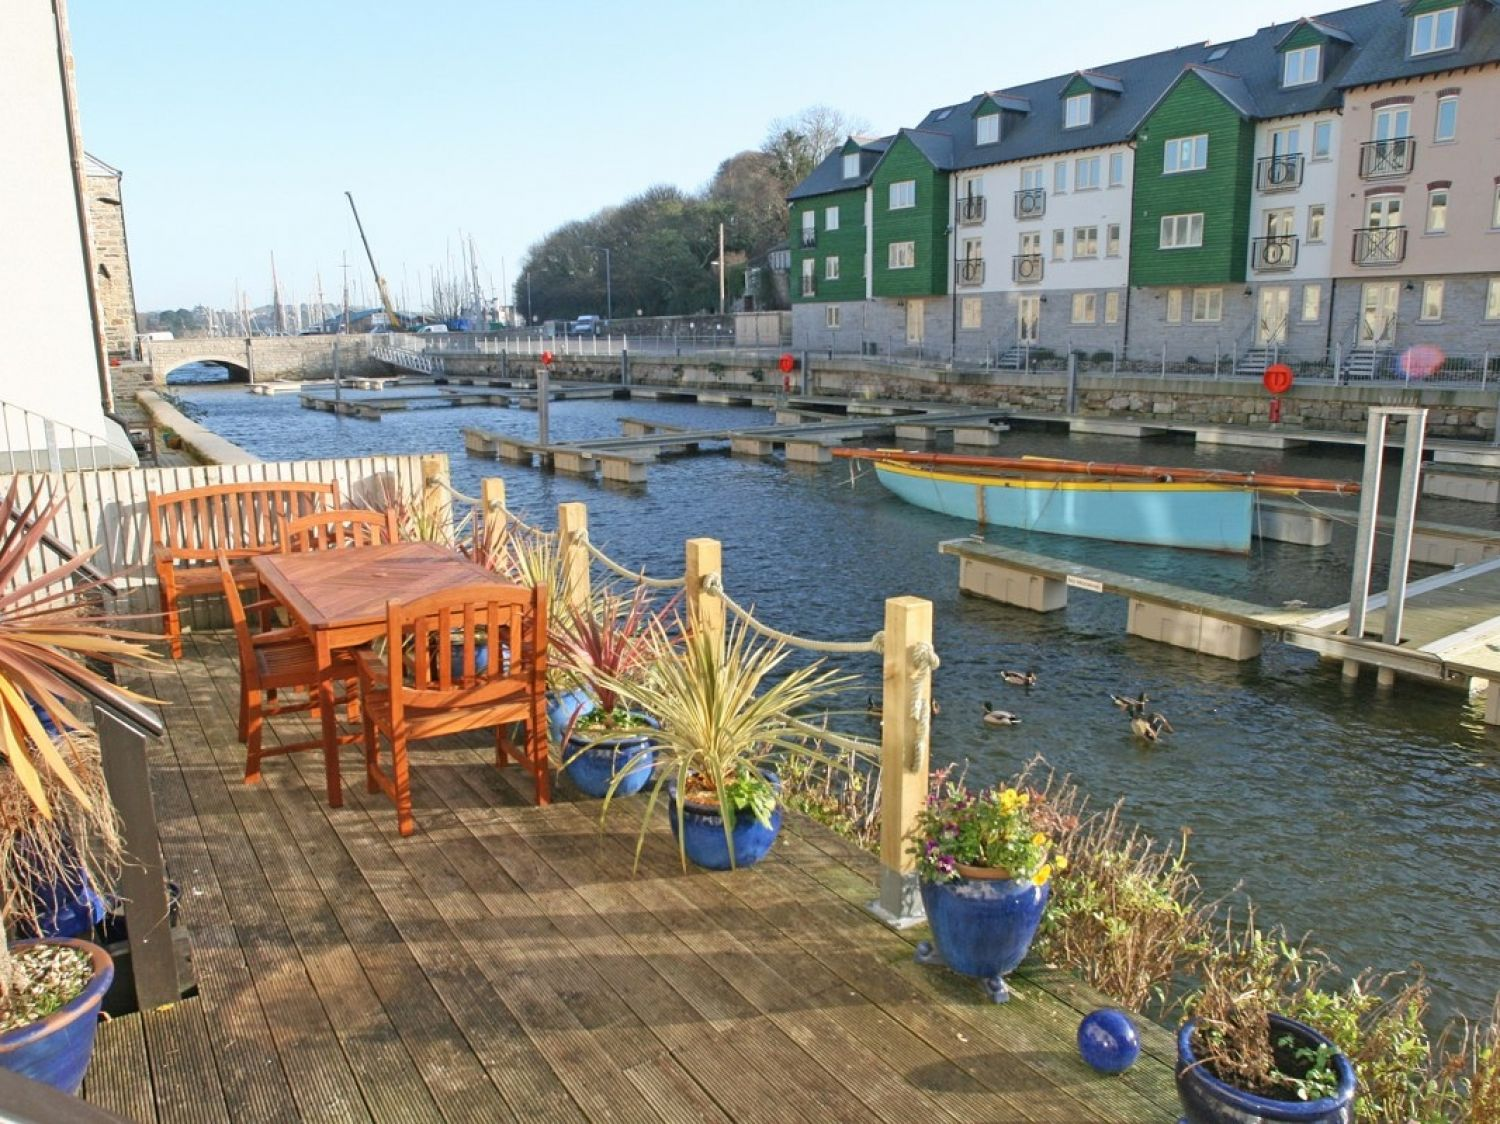 Tides Reach Penryn Cornwall Self Catering Holiday